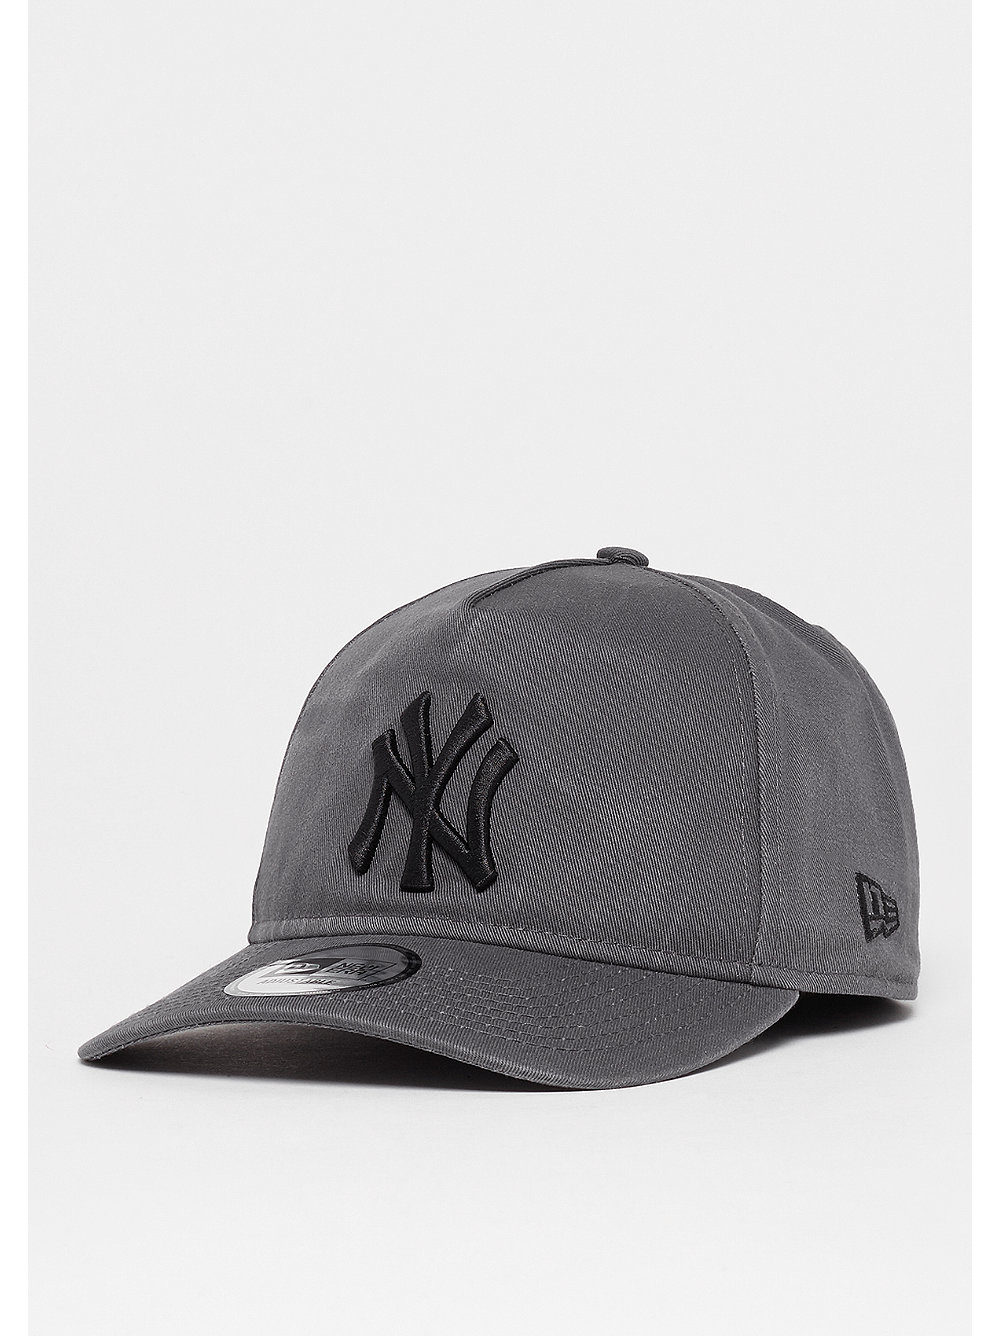 New Era 9Forty MLB New York Yankees Washed Frame graphite | SNIPES ...